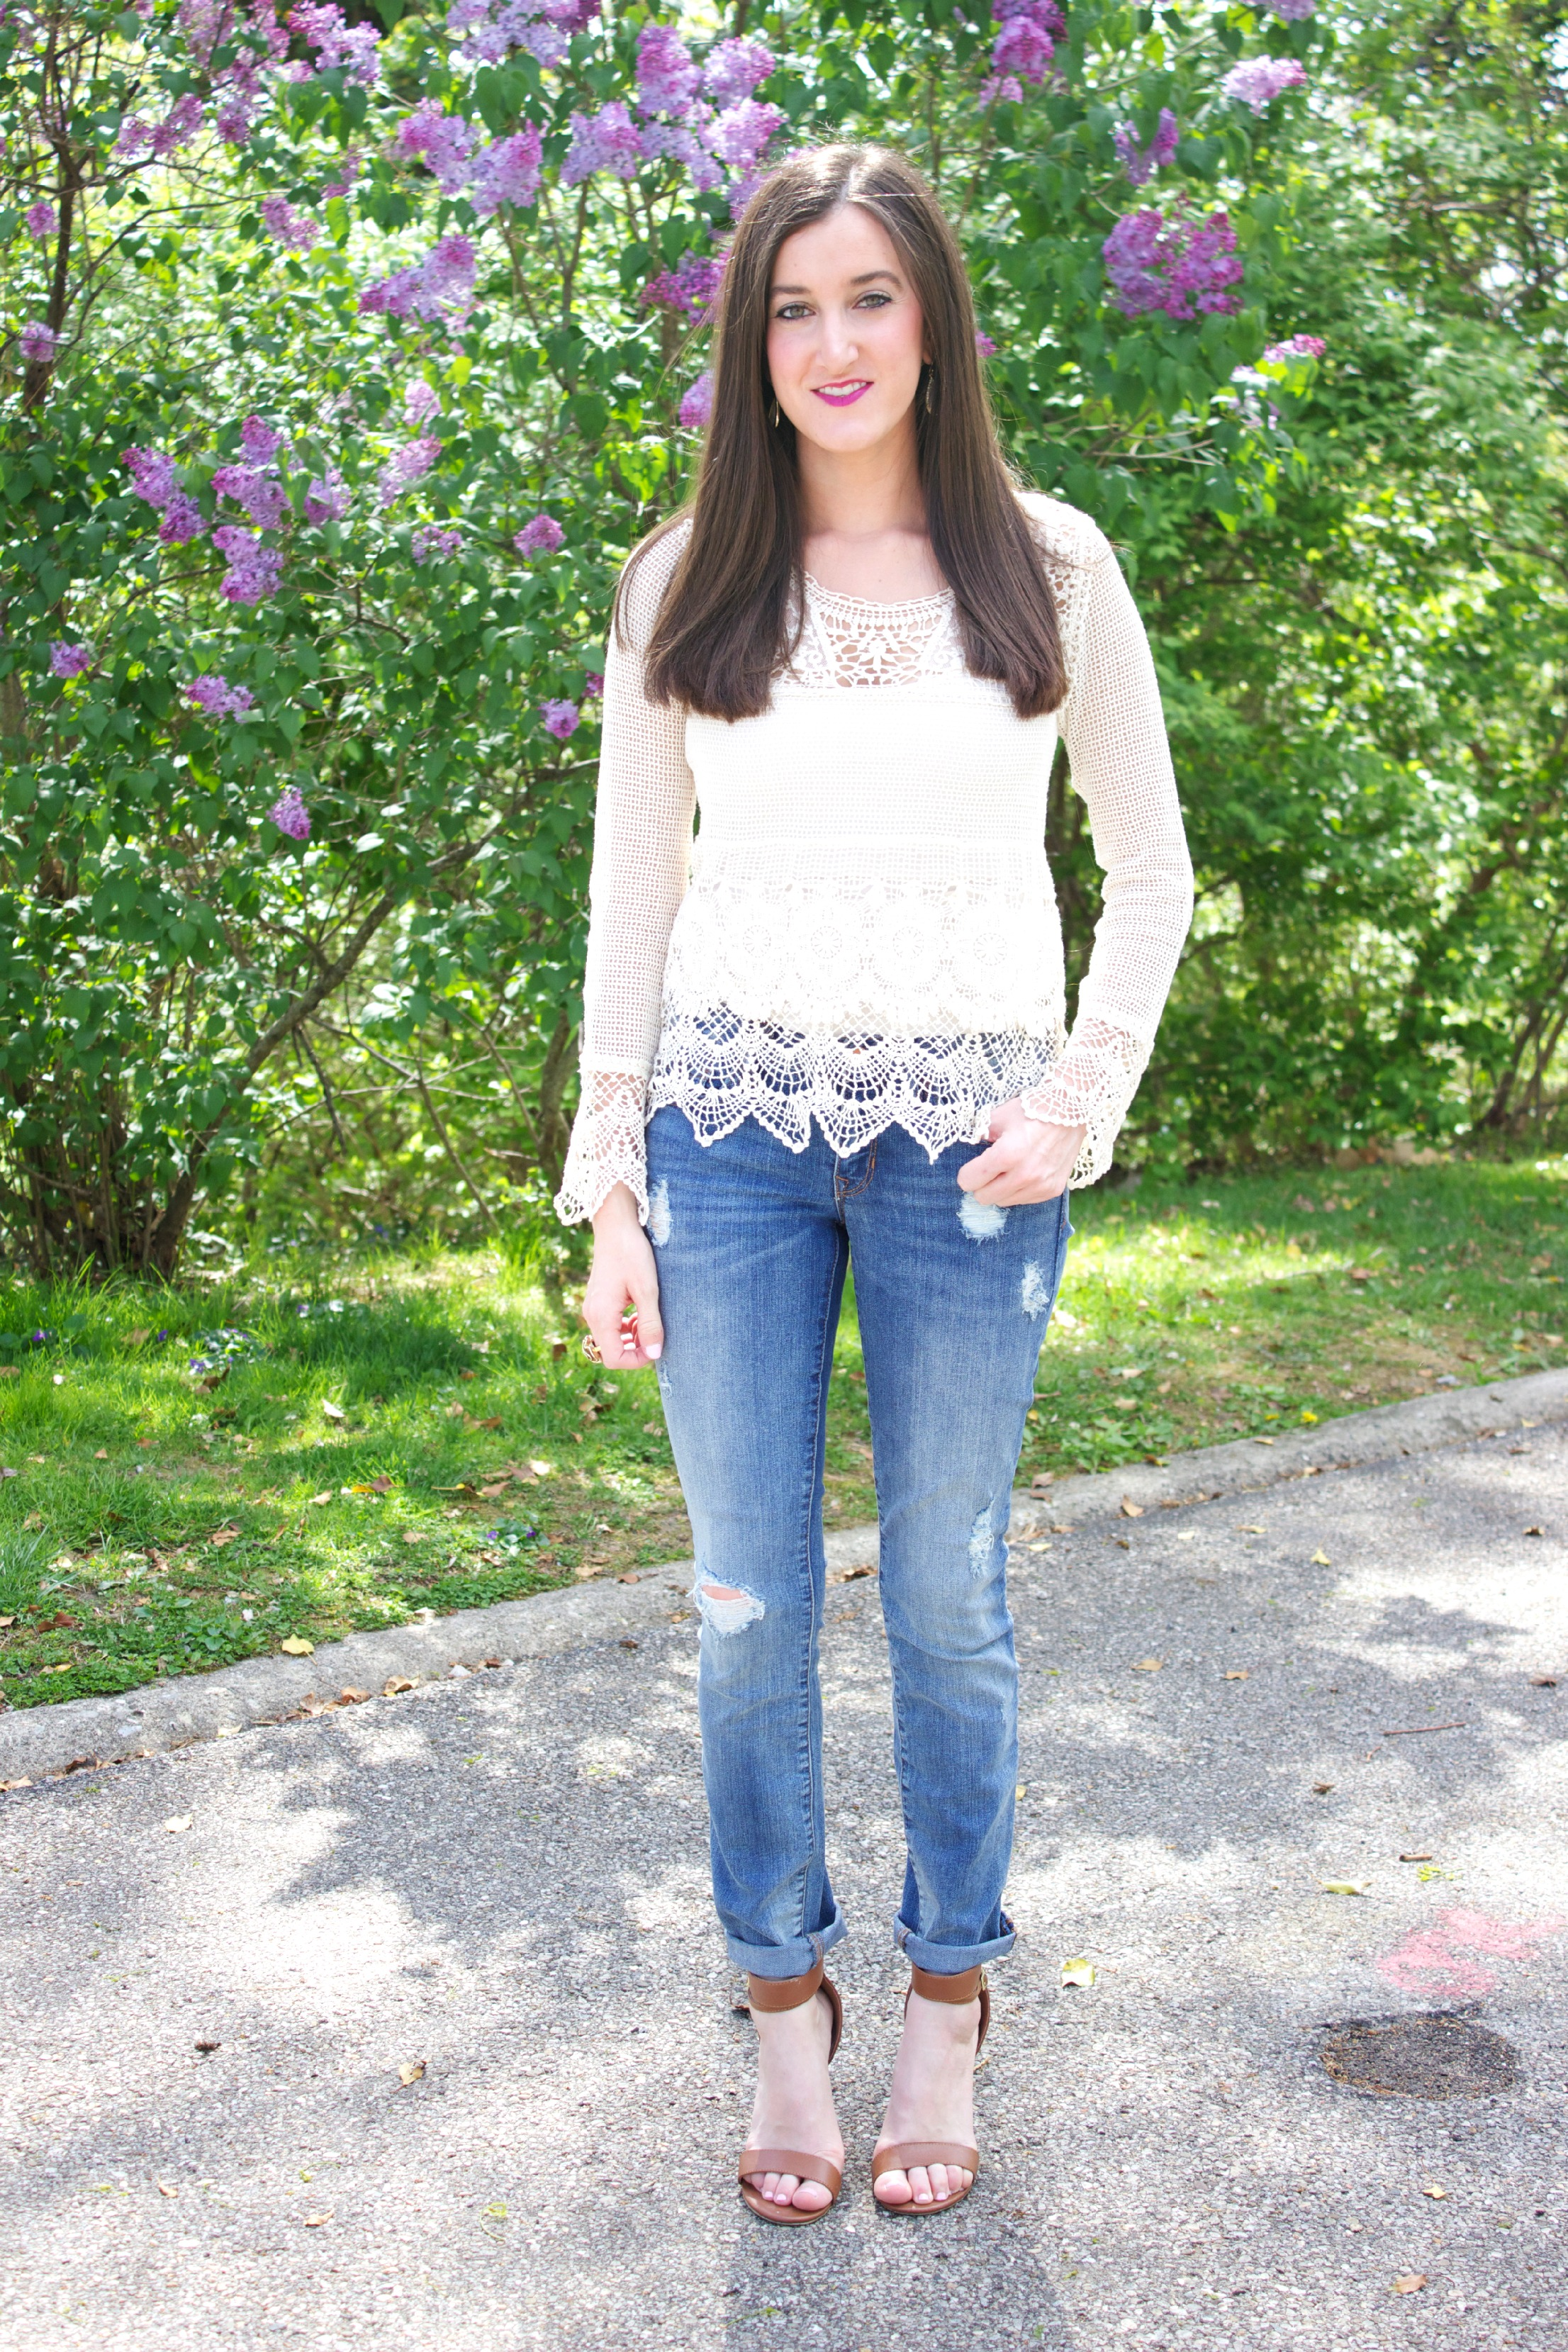 Crochet Jeans : Crocheted & Distressed baubles to bubbles